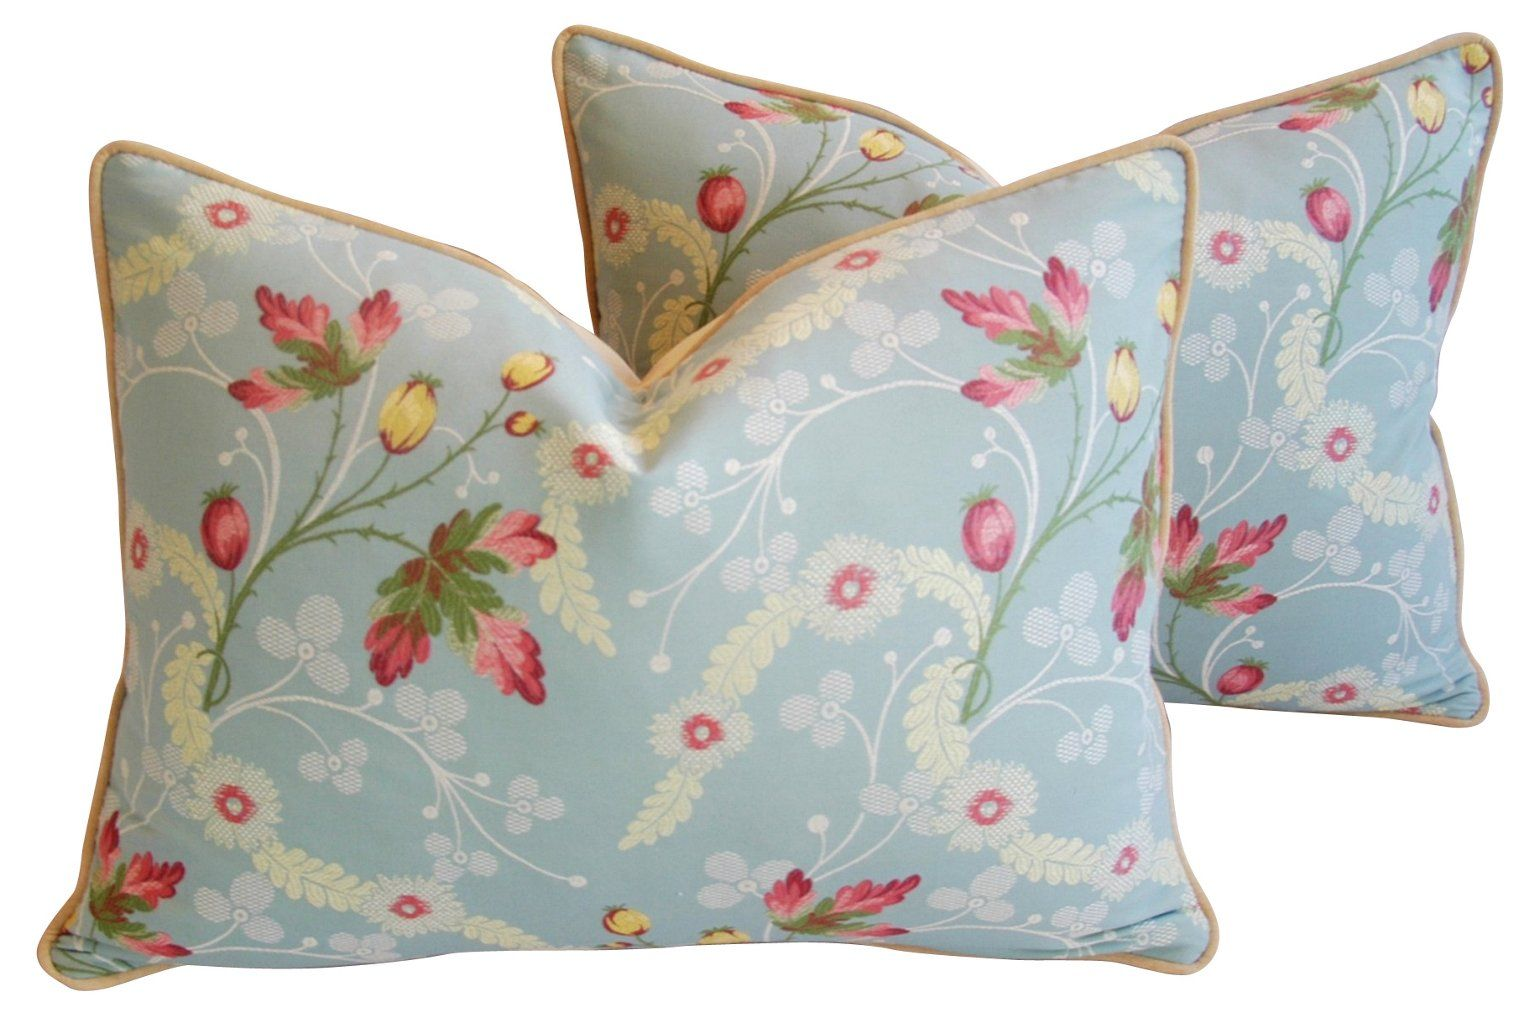 Scalamandr¨¦ Floral Brocade Pillows, Pr - Mike Seratt - Top Vintage Dealers - Vintage  One Kings Lane #Pillows#Pr#Mike